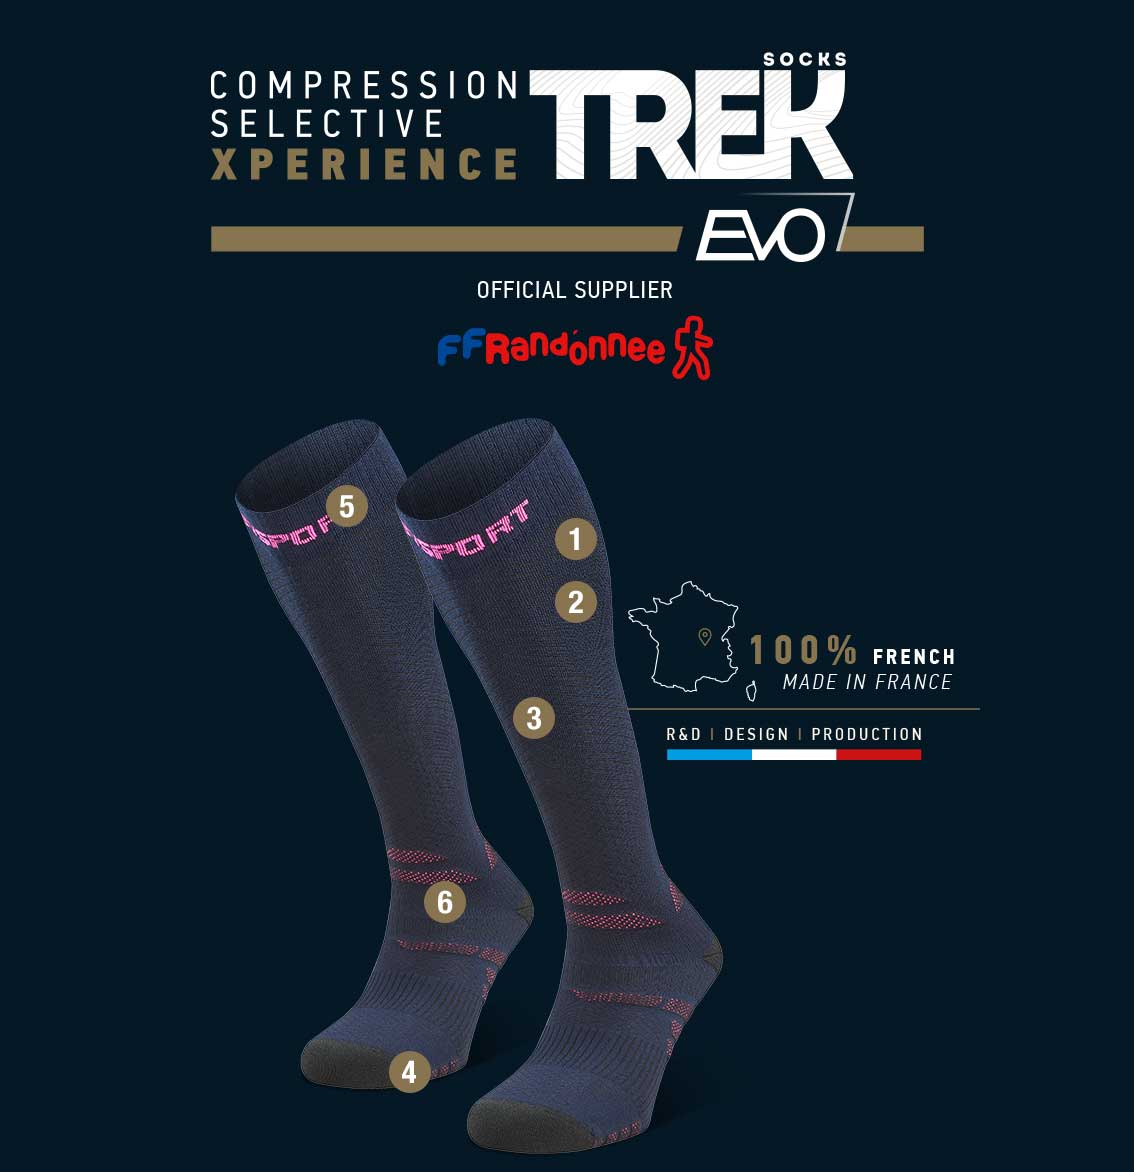 Hiking_socks_Trek_compression_EVO_blue-pink